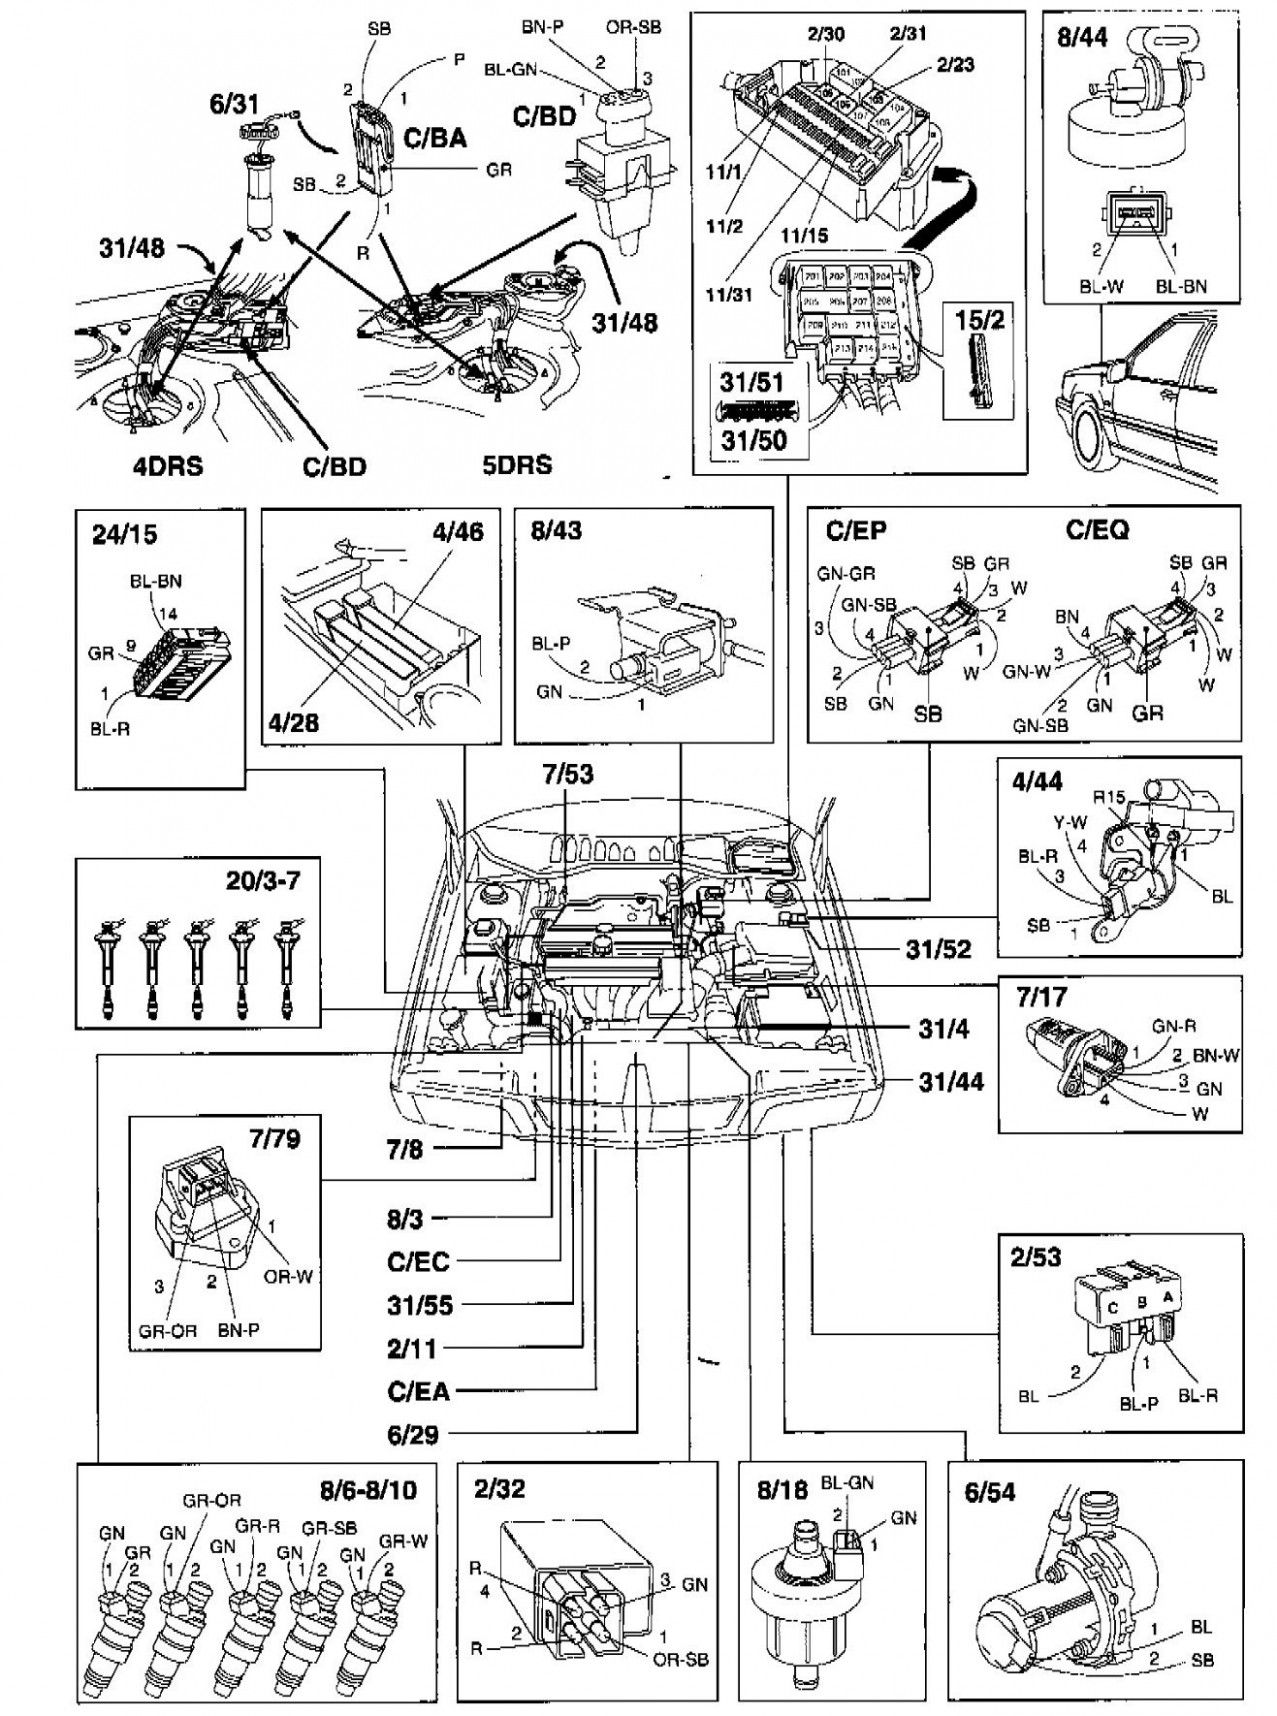 Volvo S5 T5 Engine Diagram | Volvo s60, Volvo, Diagram | Volvo S60 Wiring Diagram |  | Pinterest